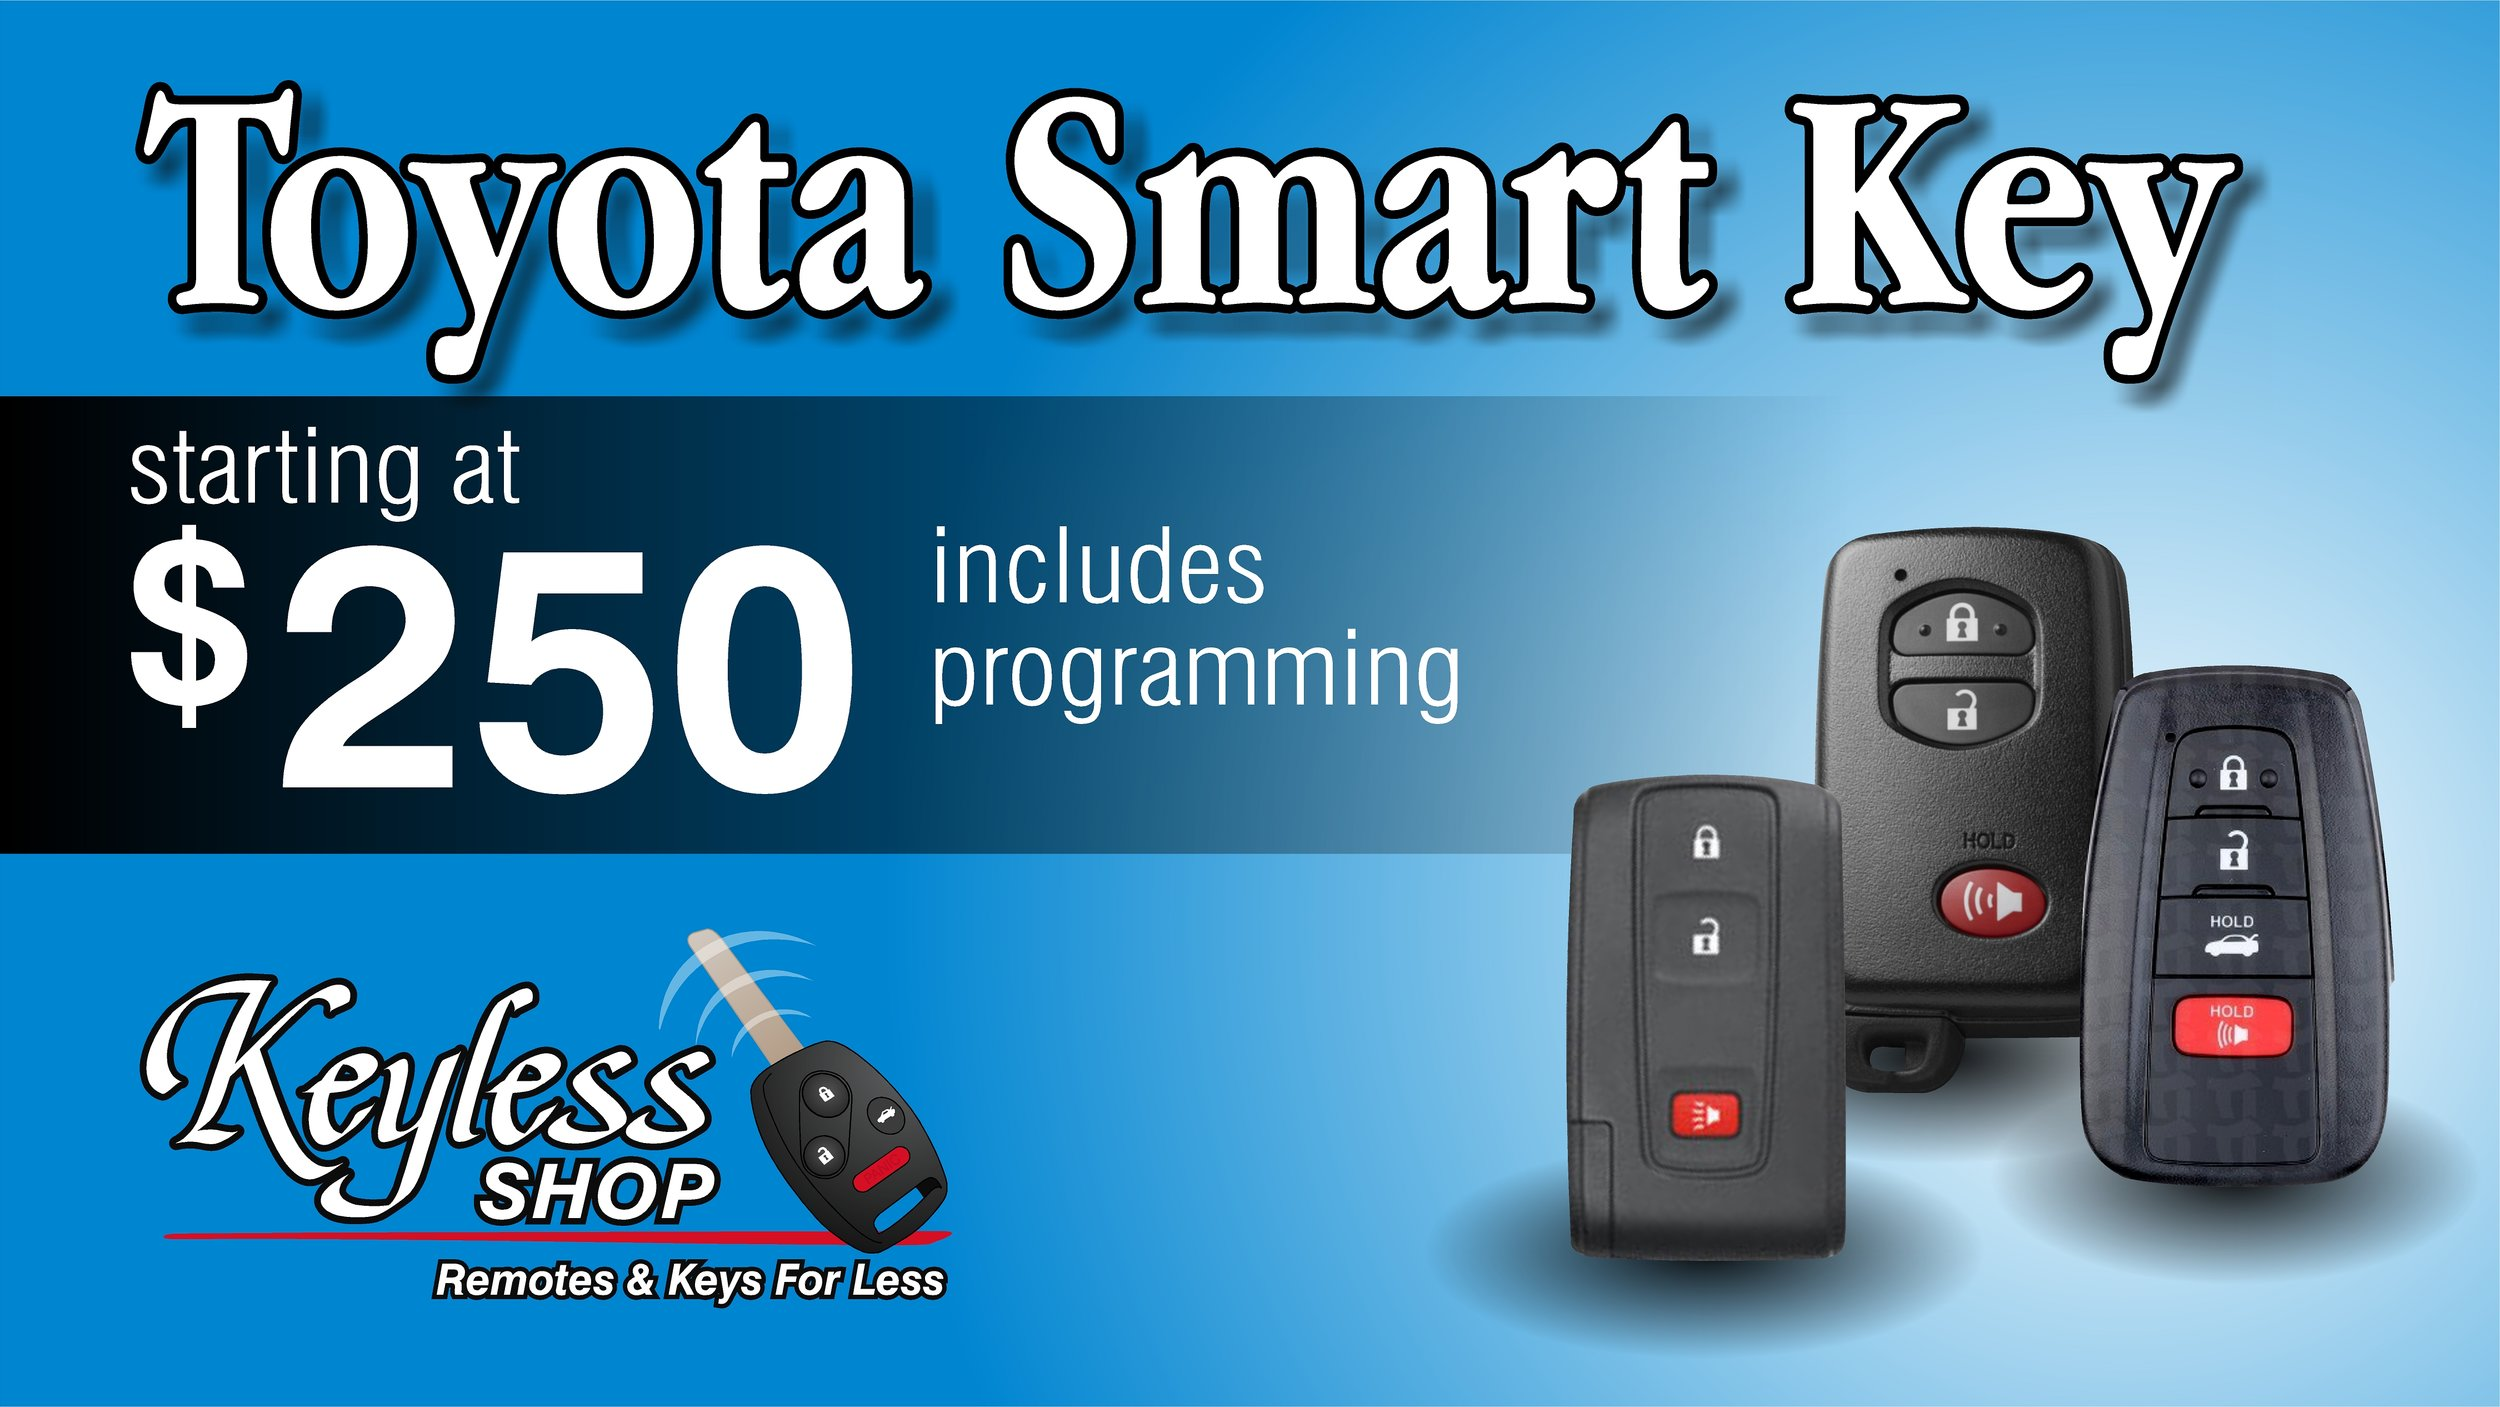 Toyota Smart keys starting at $250 programmed to your vehicle.  Just need the programming? Smart key programming starts at $150 at any Keyless Shop location.